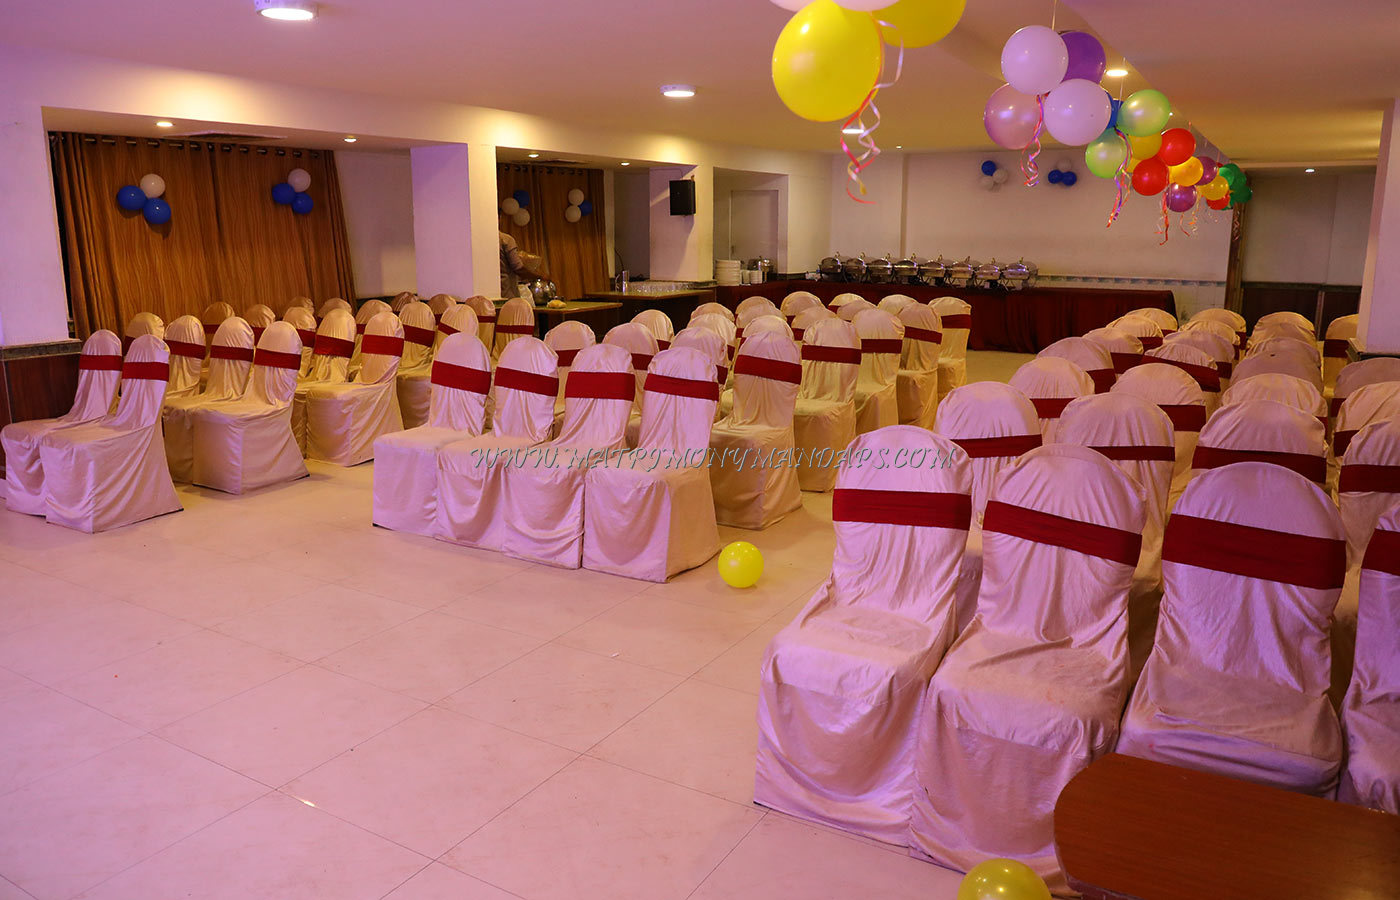 Find the availability of the Tabla Banquet Hall - A (A/C) in Kukatpally, Hyderabad and avail special offers